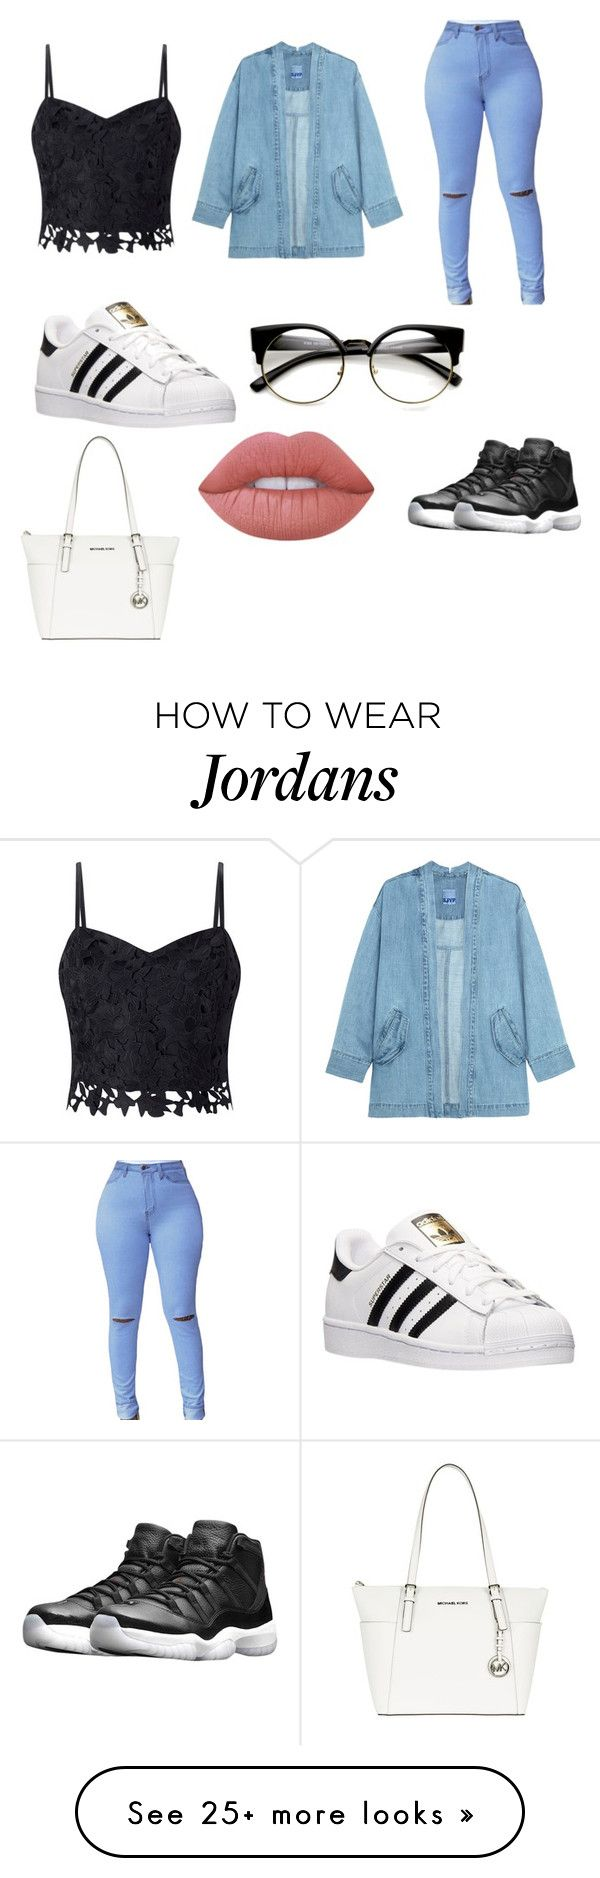 """""""weeknds clothes """" by classy-b on Polyvore featuring Lipsy, Steve J & Yoni P, adidas, MICHAEL Michael Kors, Lime Crime and NIKE"""